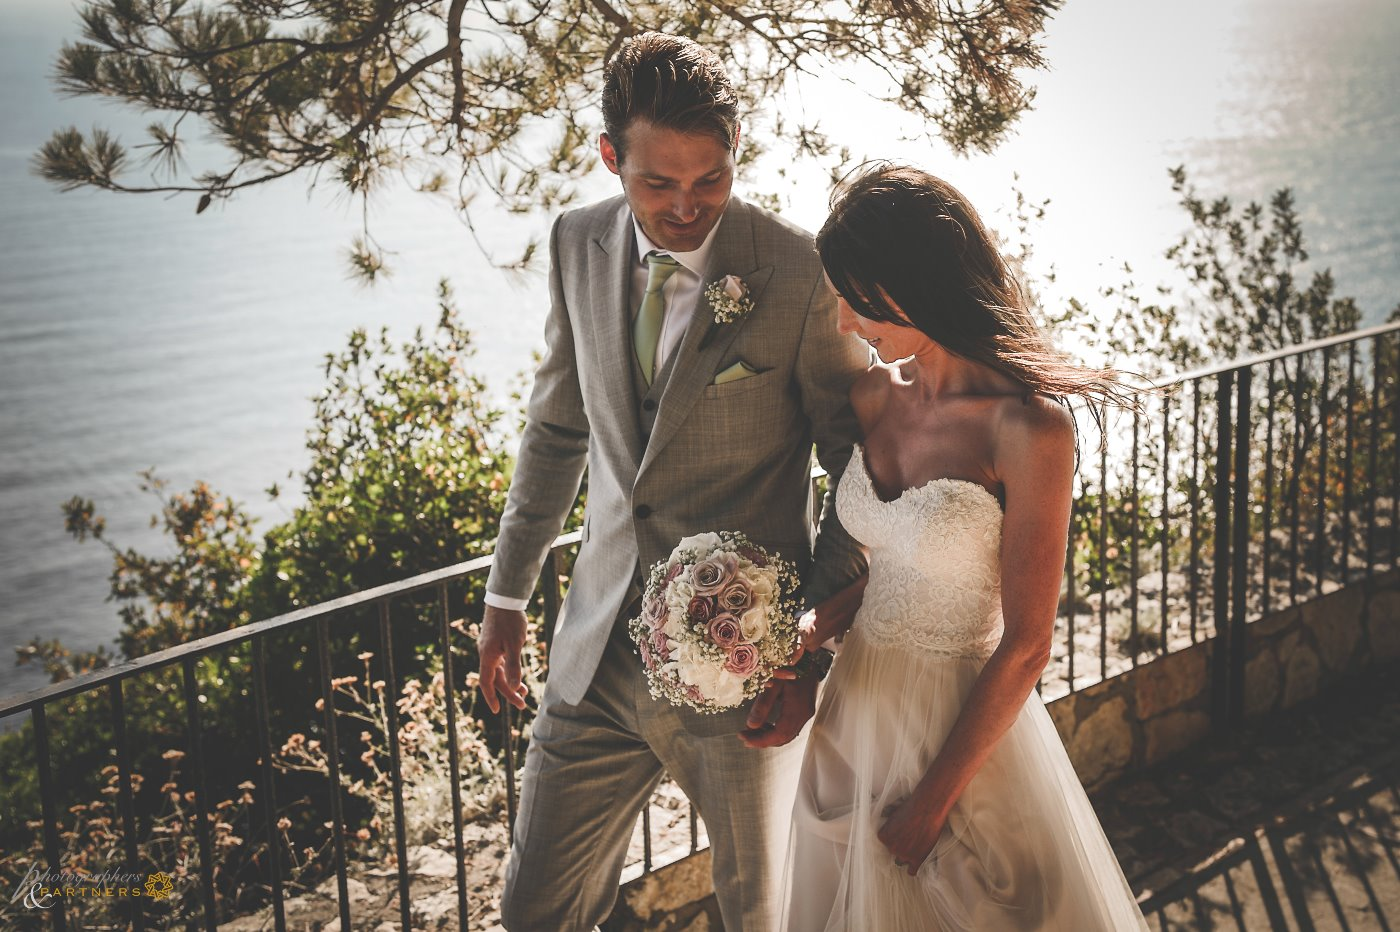 photography_weddings_capri_14.jpg